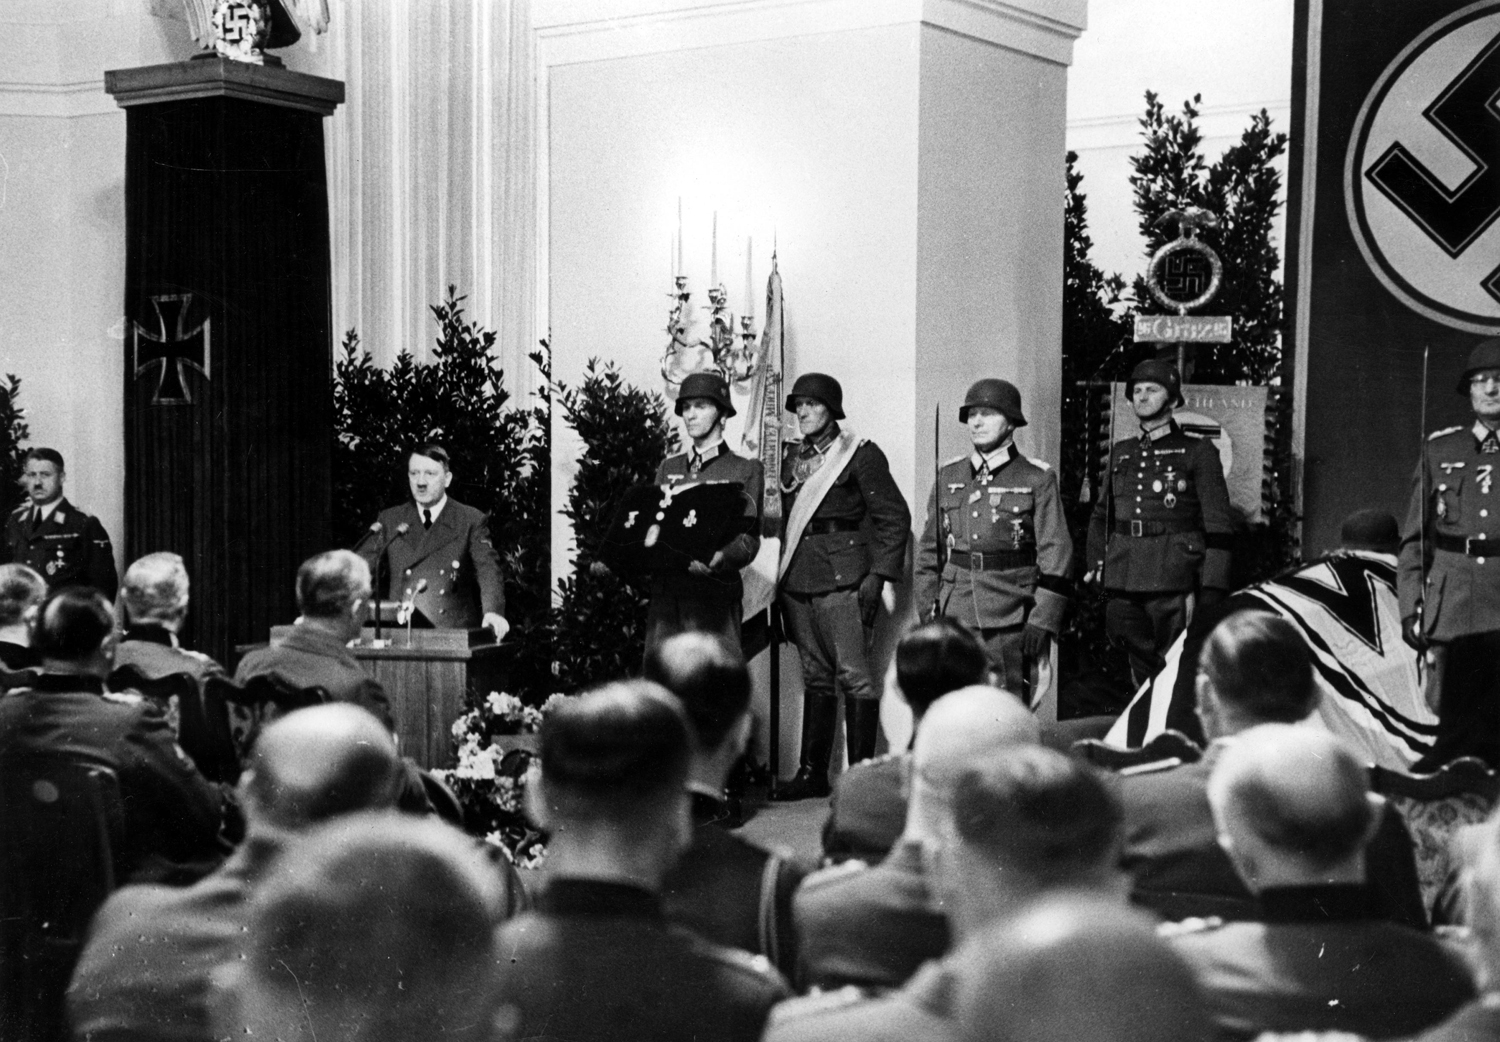 Adolf Hitler gives a speech in memory of the recently deceased general Dietl in Schloss Klessheim